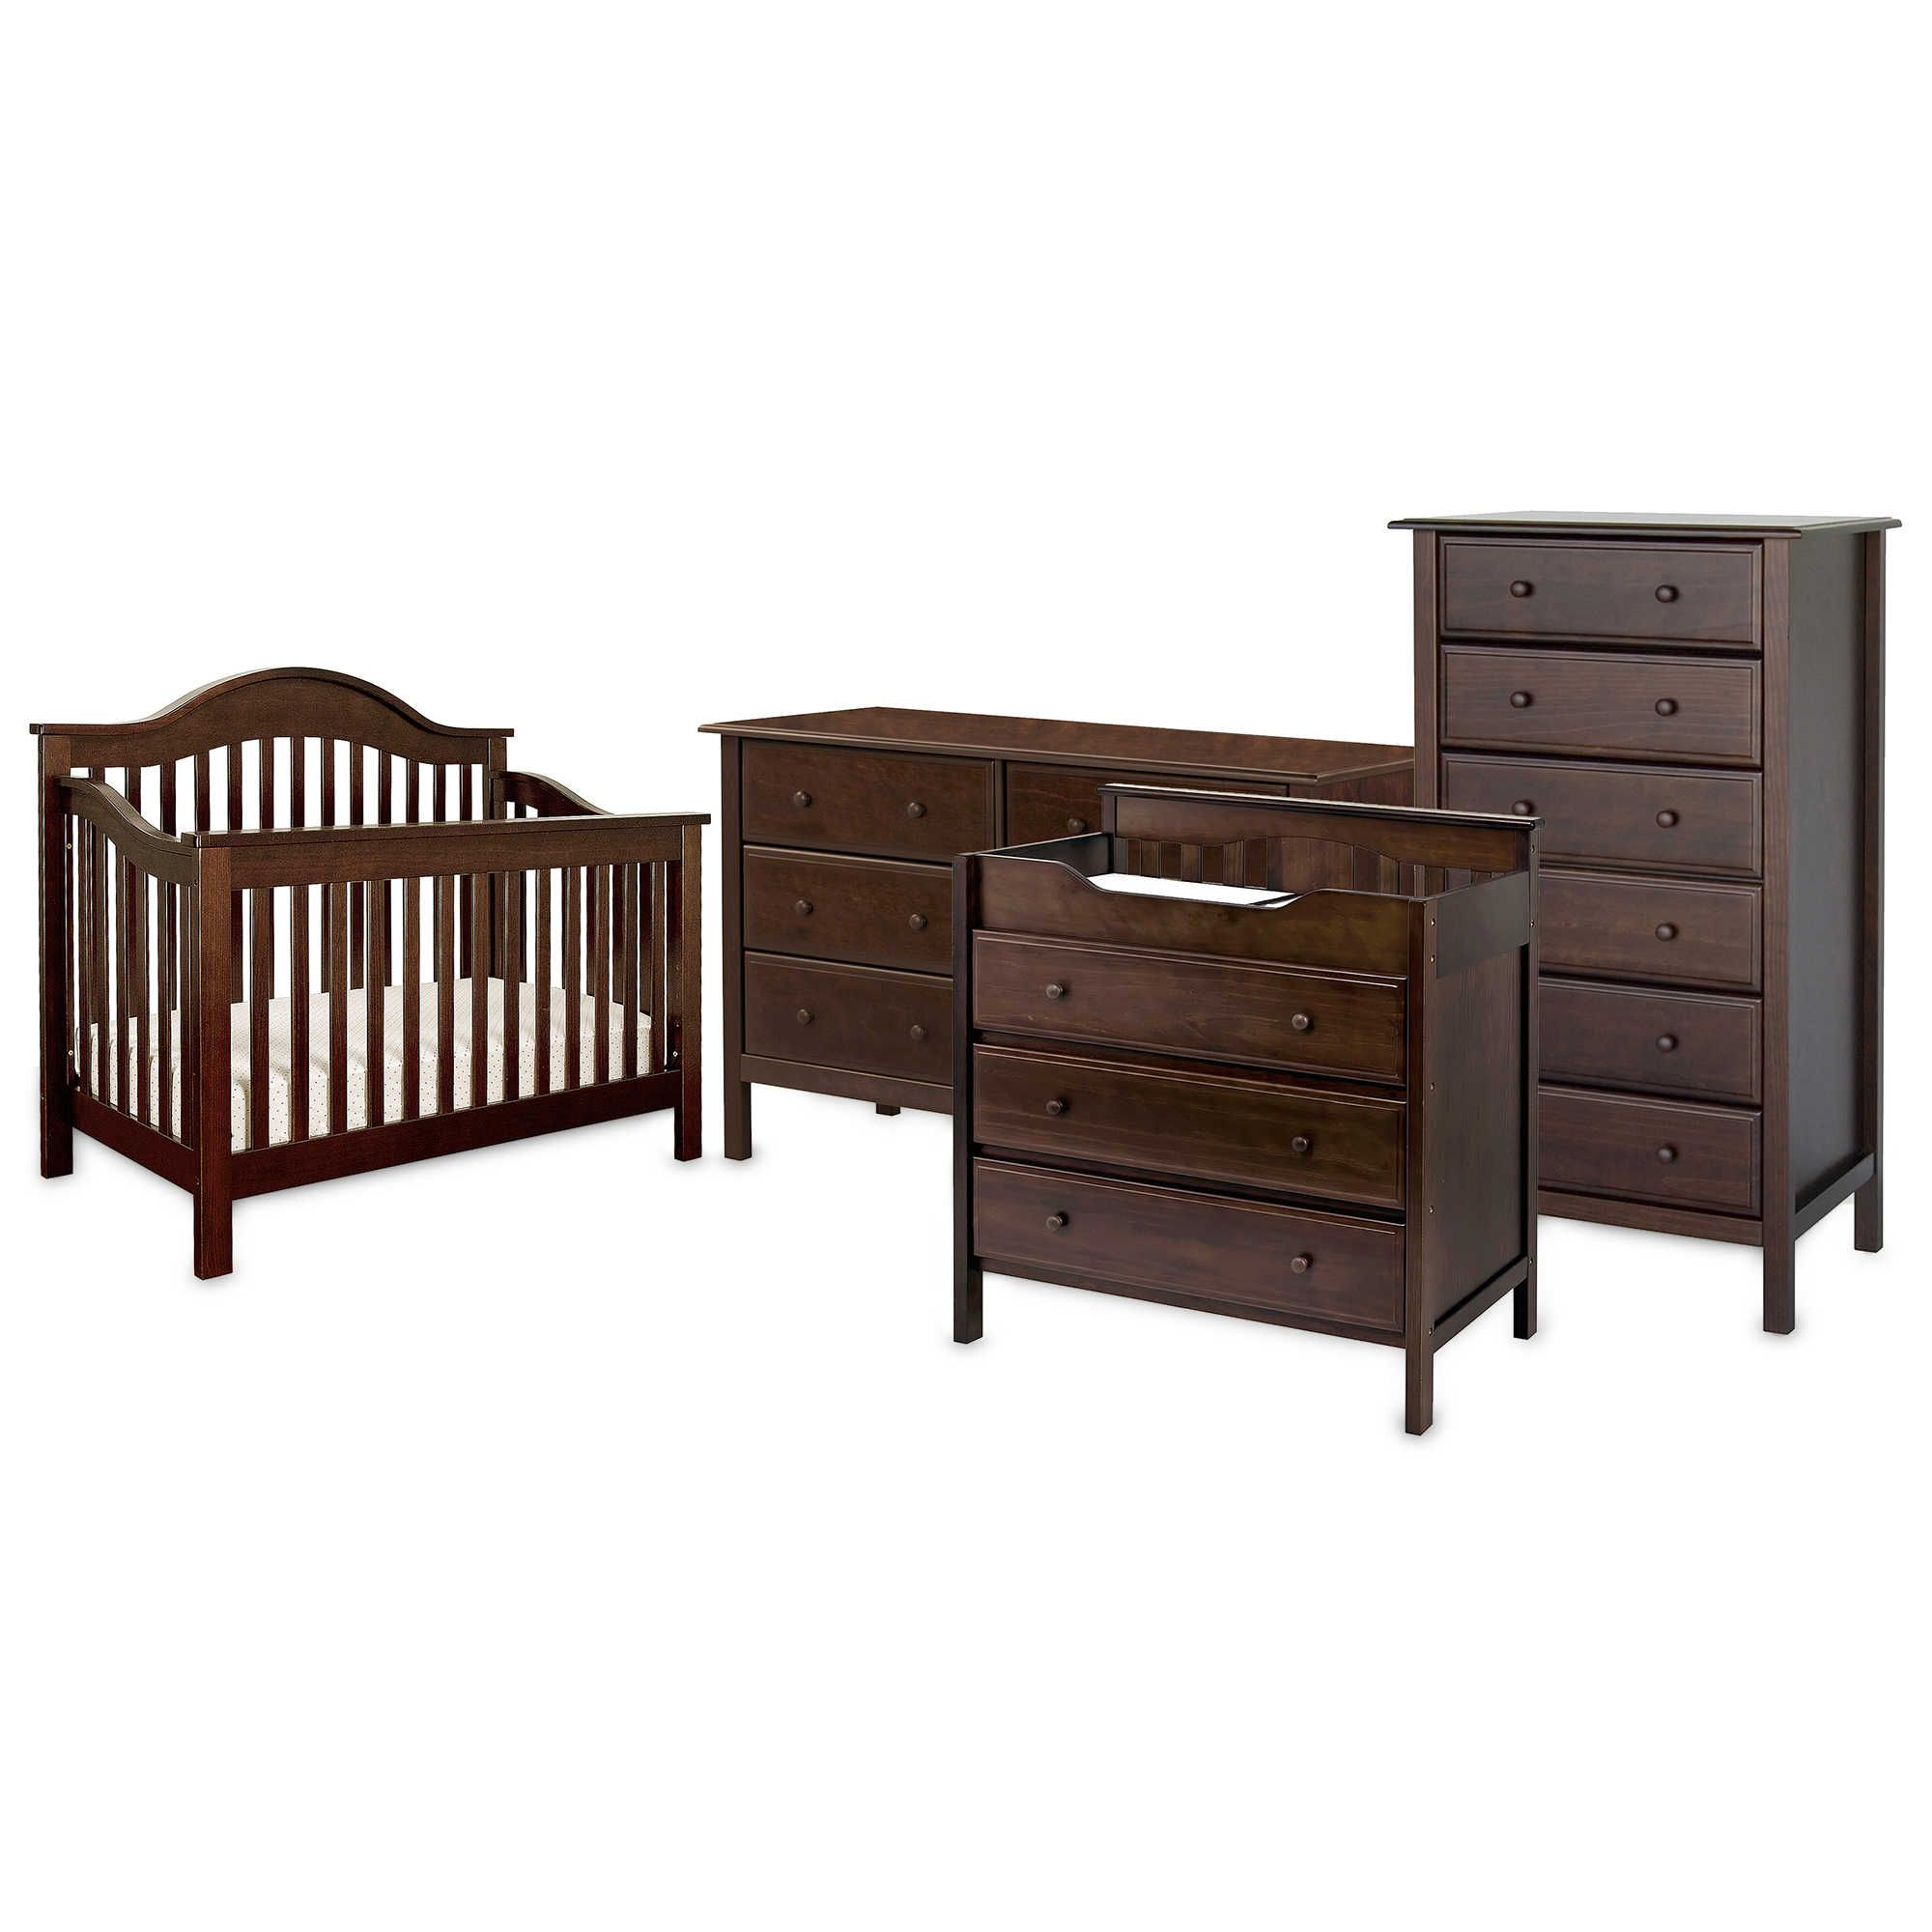 The DaVinci Jayden Furniture Collection Boasts Clean And Sophisticated  Lines That Add Modish Style To Any Nursery. Versatile Storage Features  Provide Room ...